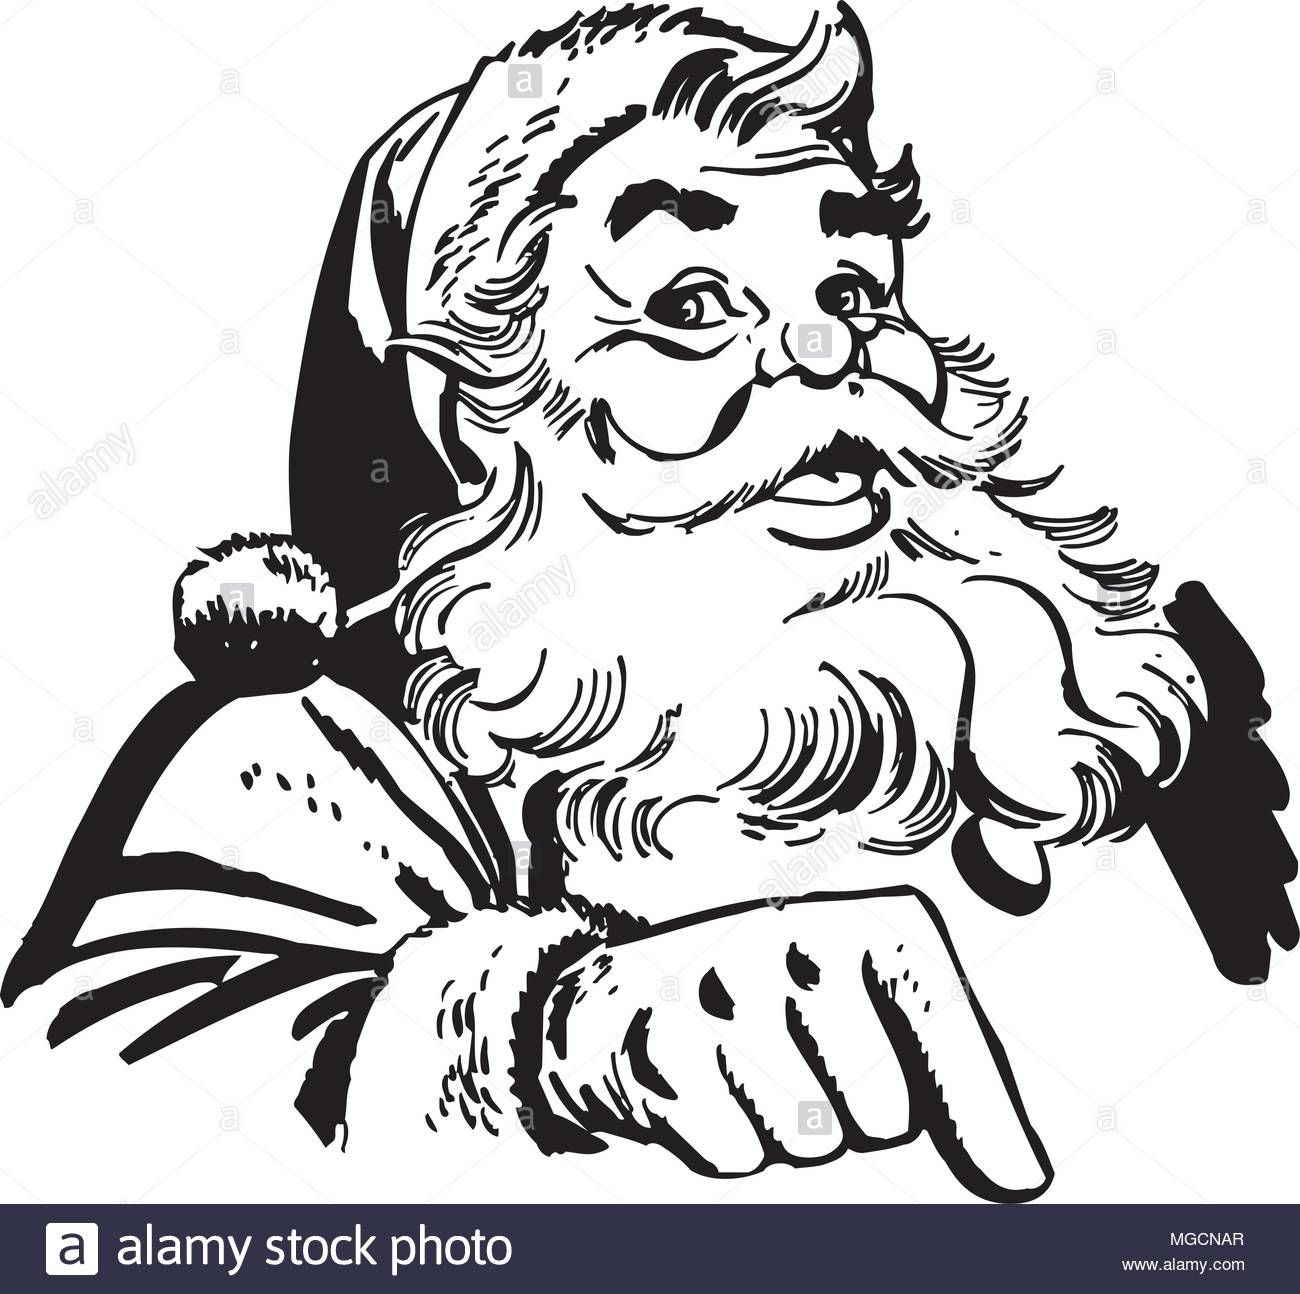 Download This Stock Vector Santa Claus Pointing Retro Clipart Illustration Mgcnar From Alamy S Libra Vintage Santa Claus Santa Claus Vector Vintage Santas